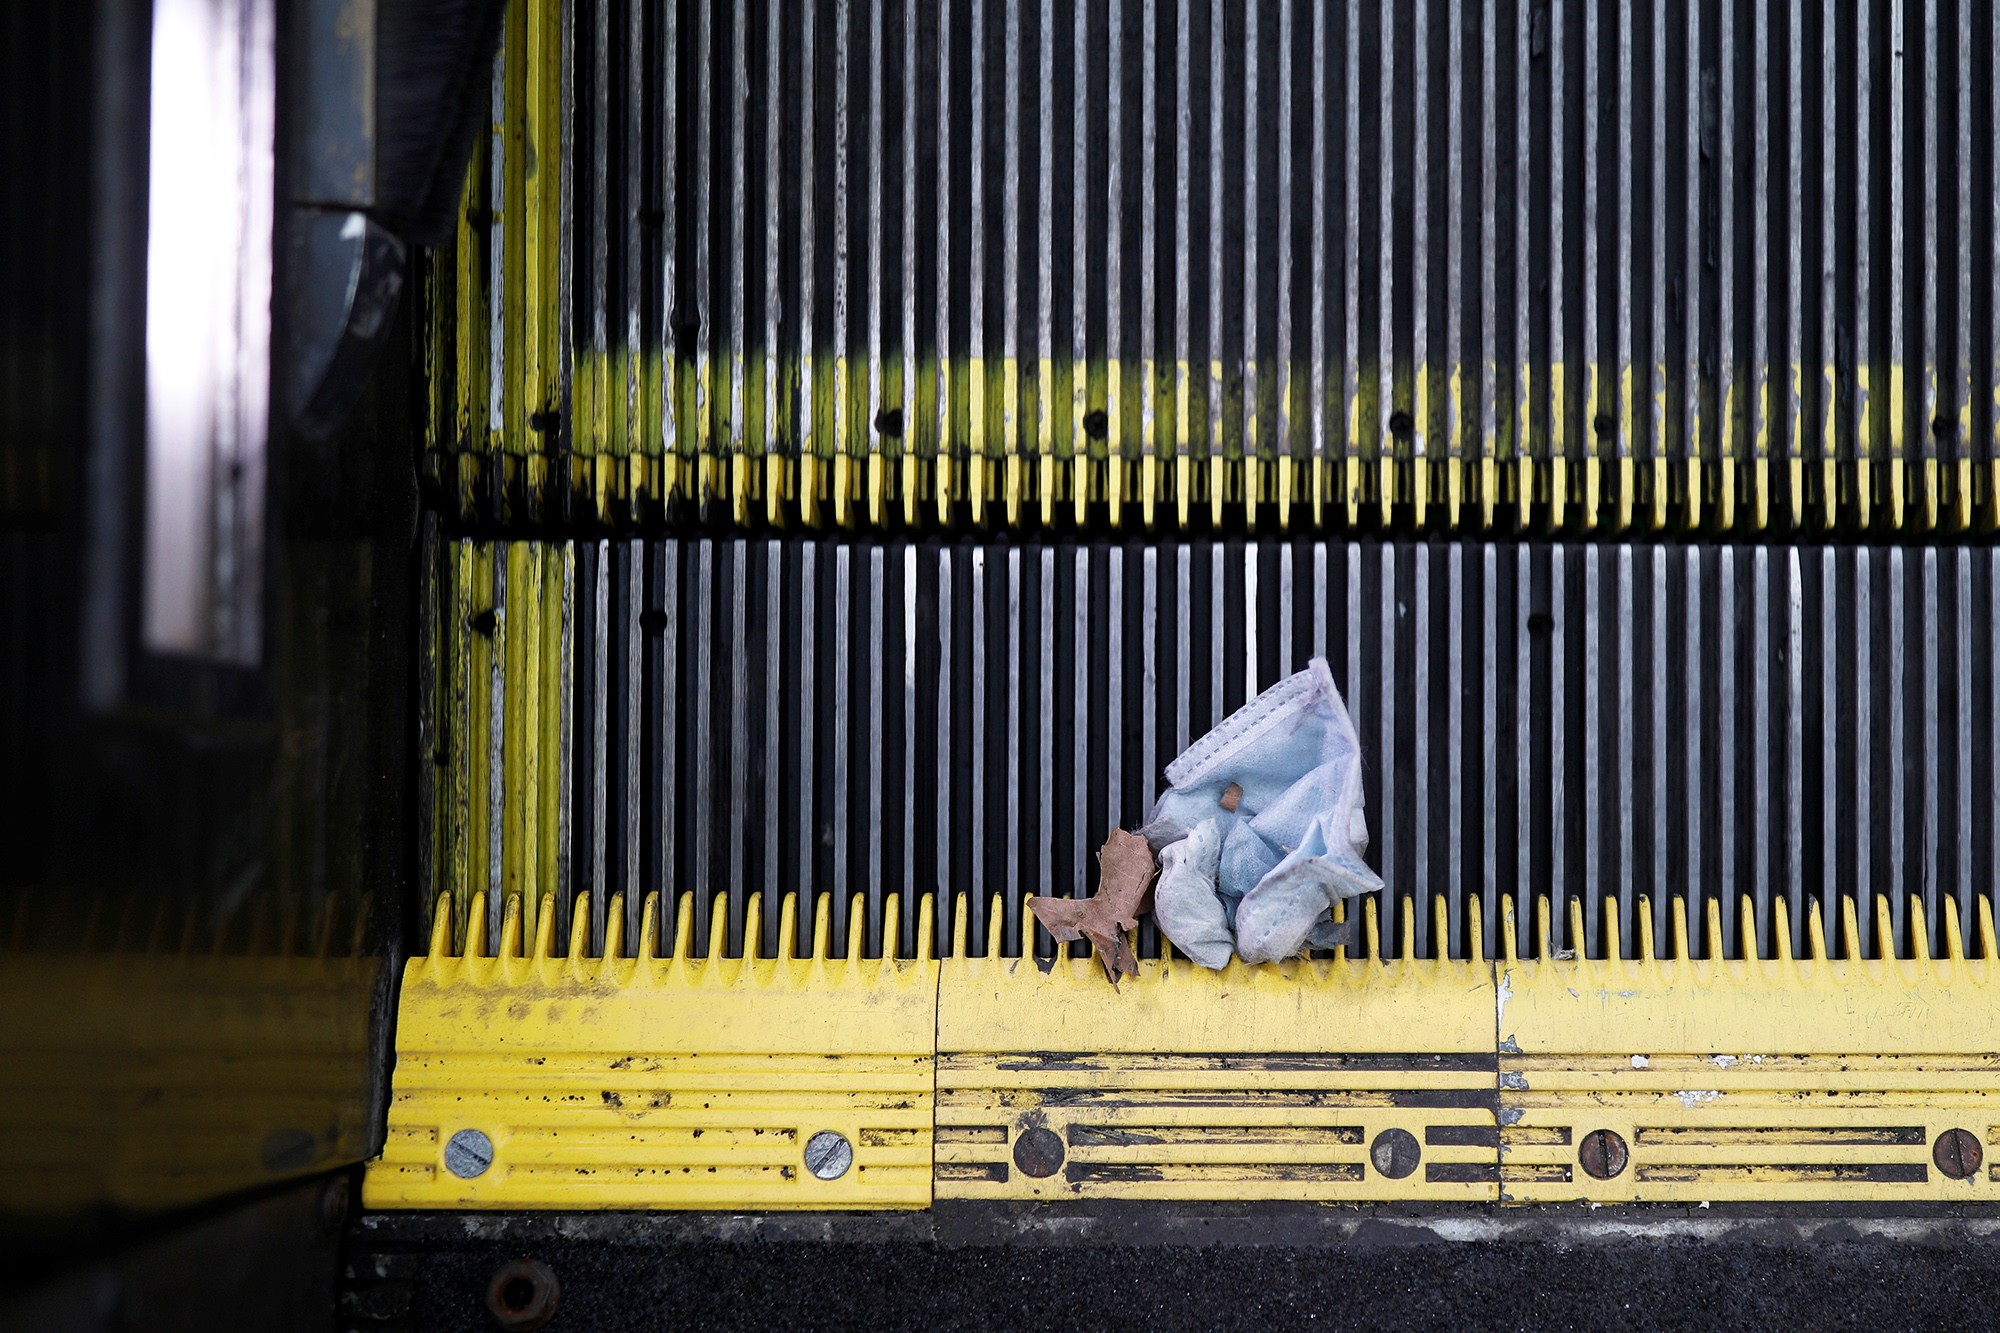 A discarded face mask is caught in the grooves of a moving escalator at the Dupont Circle Metro underground train station, as Mayor Muriel Bowser declared a State of Emergency due to the coronavirus disease (COVID-19) in Washington, U.S., March 16, 2020. Tom Brenner/REUTERS